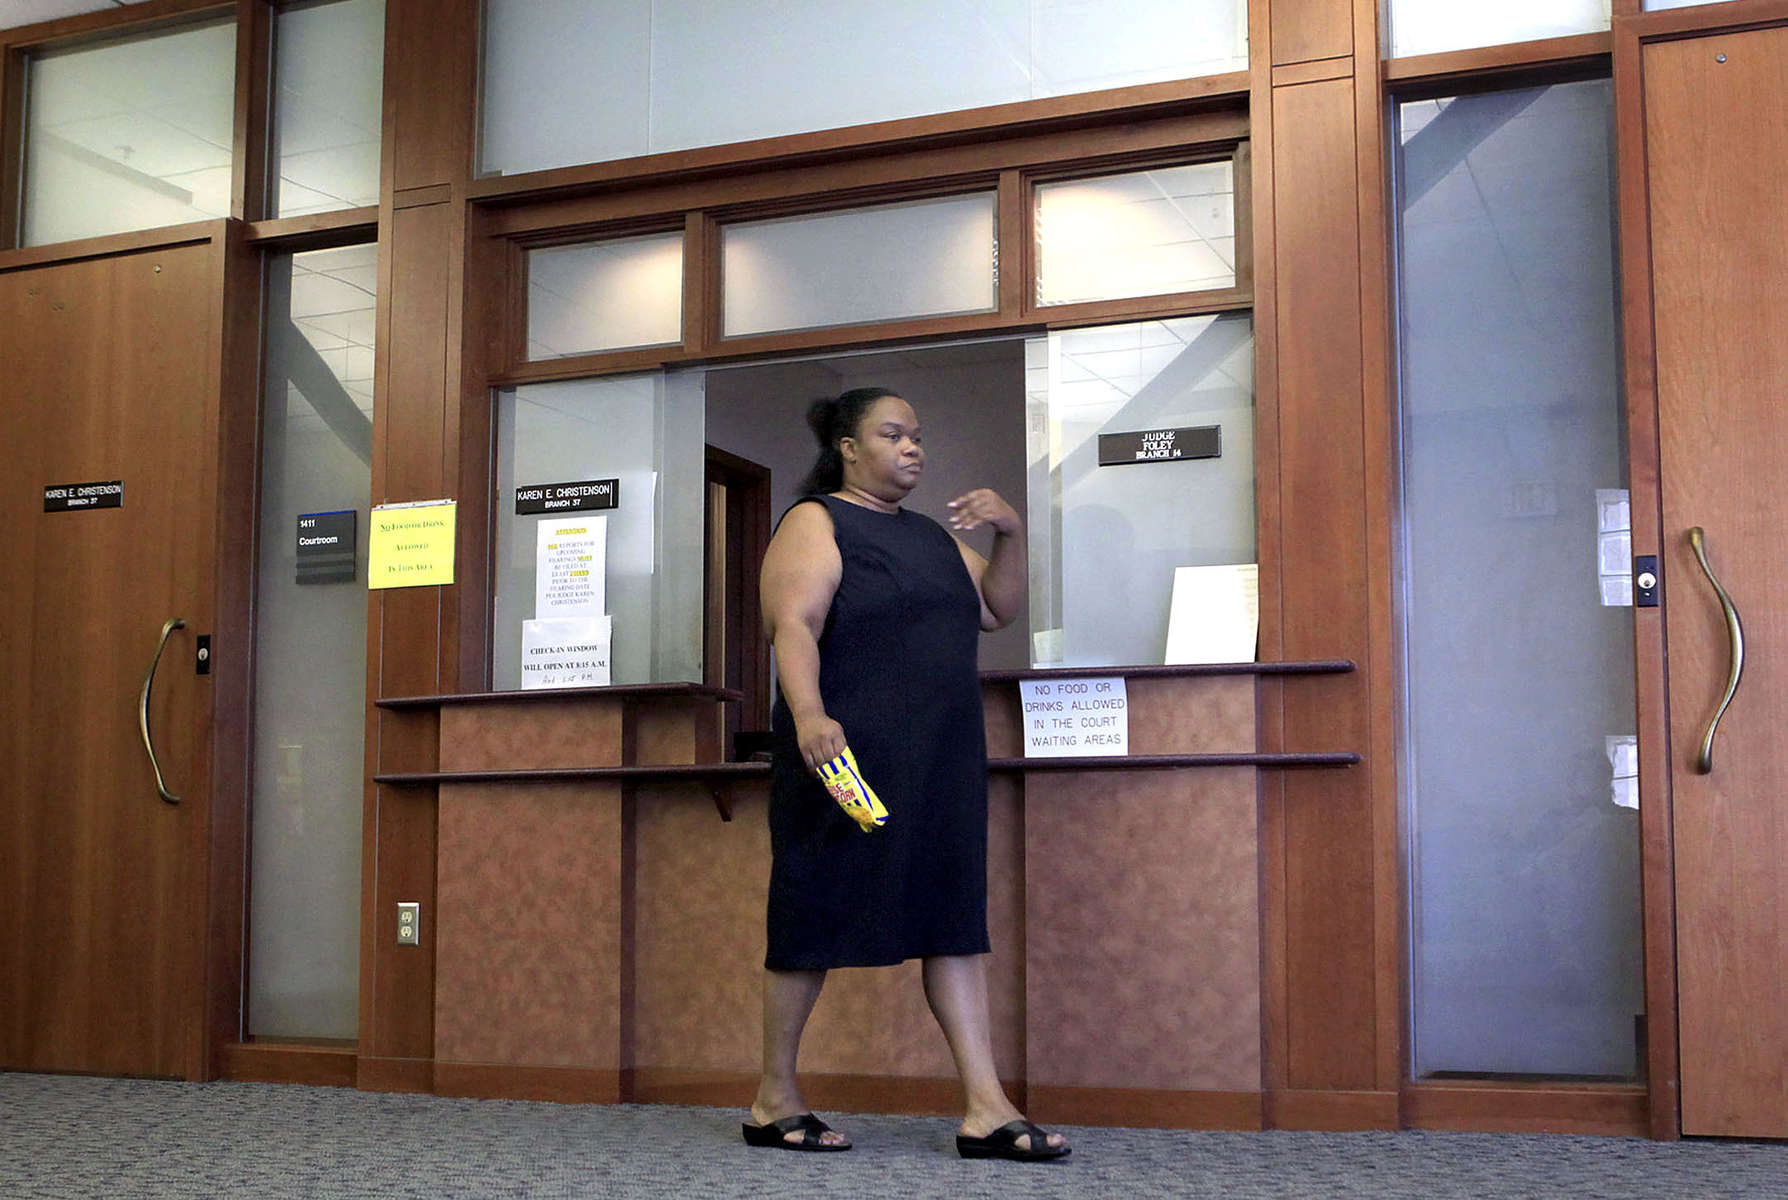 After the boys lived with their mother for one month, they were again removed from her custody and placed in foster care. Court records show that there were reported episodes of violence, verbal abuse and chaos in the home. Brandy storms out of Children's Court without attending the hearing placement and the courts must now determine how to find permanence for the boys once again.